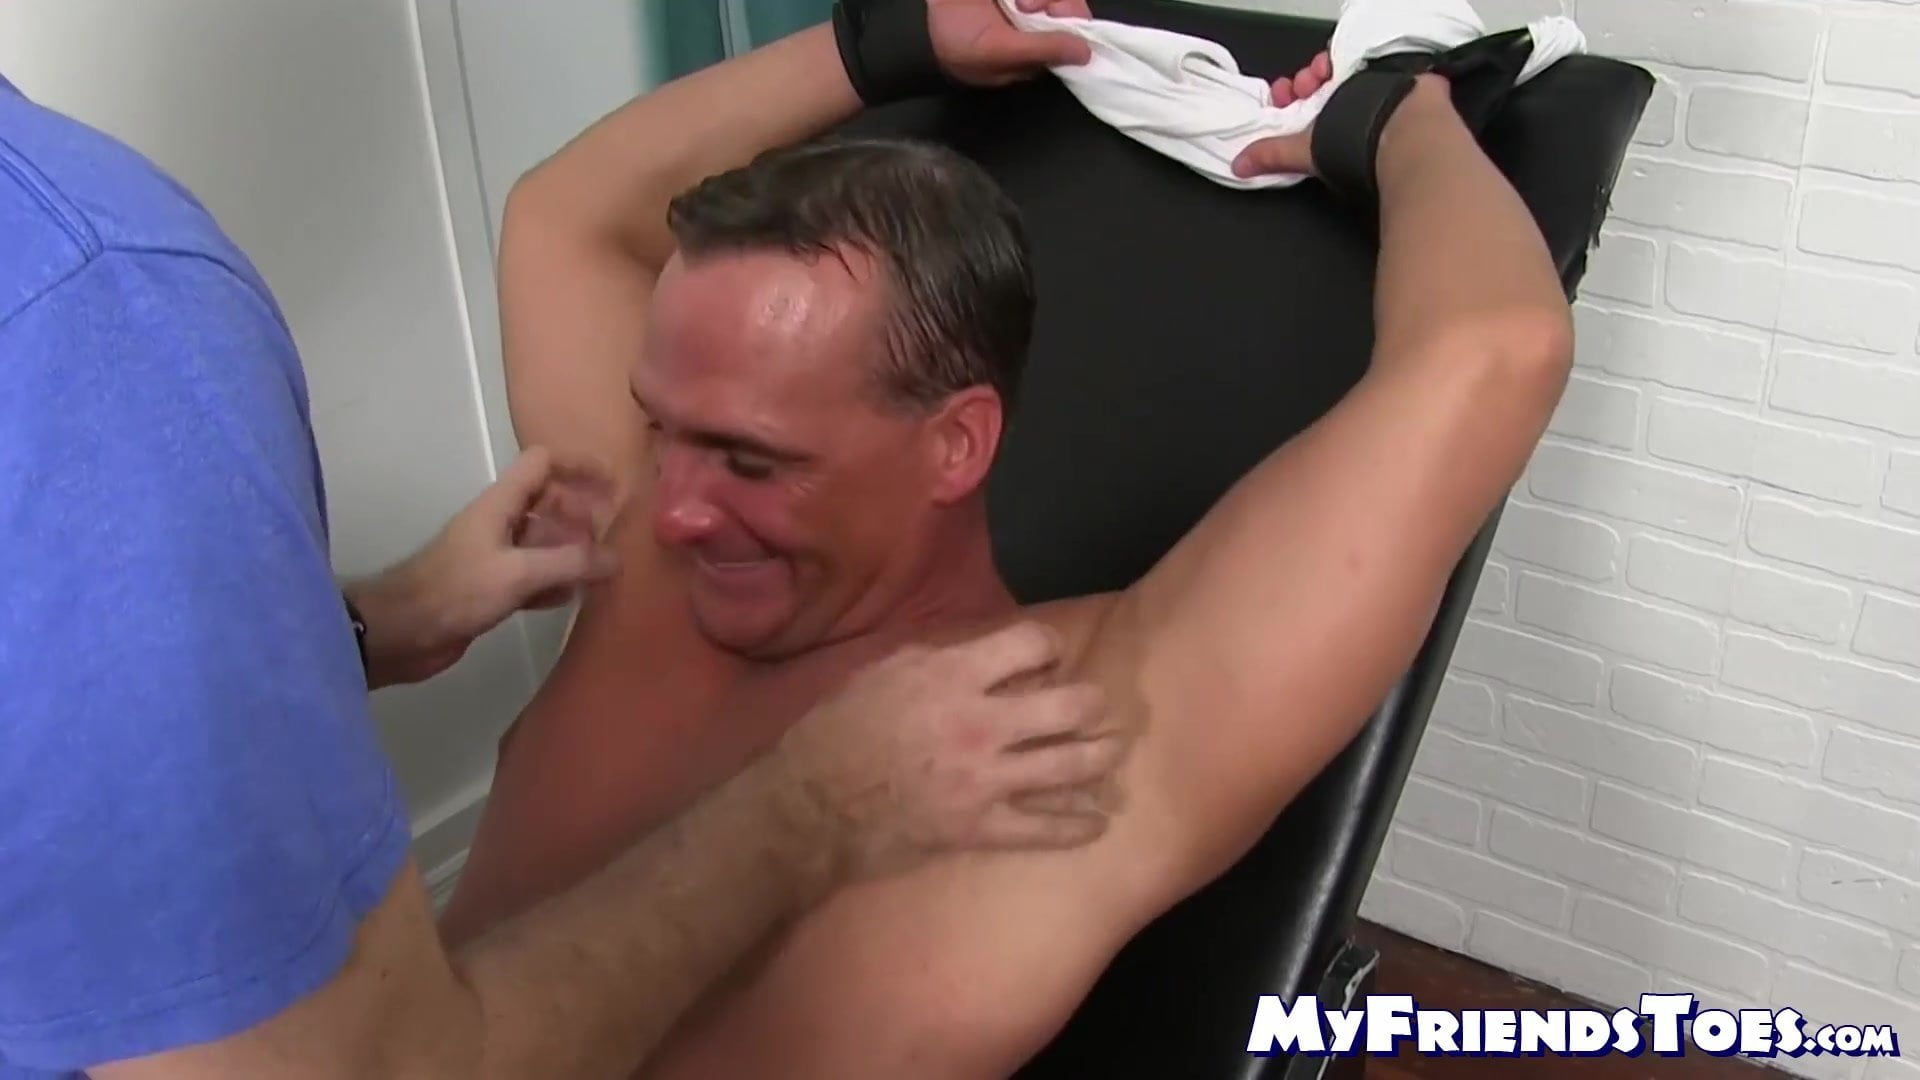 Mature hunk smiles and cries for assist whereas tickled